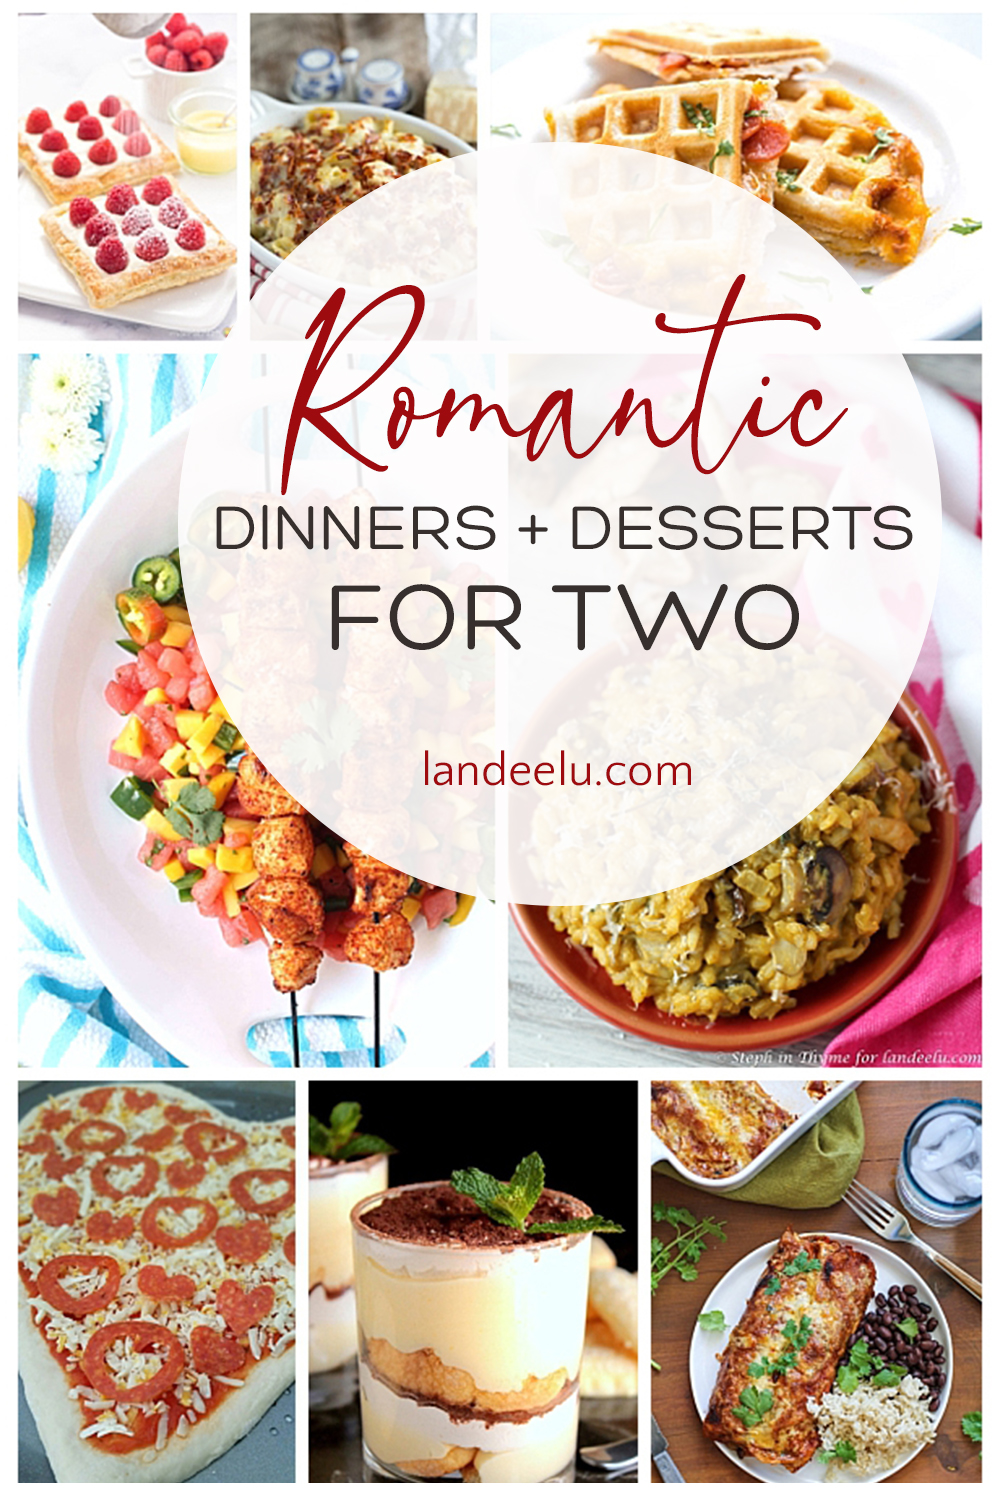 Perfect dinner and dessert ideas for romantic nights! Dinner for two for Valentine's Day, anniversaries or empty nesters! #valentinesday #romanticdinner #valentinesdaydinner #dinnerfortwo